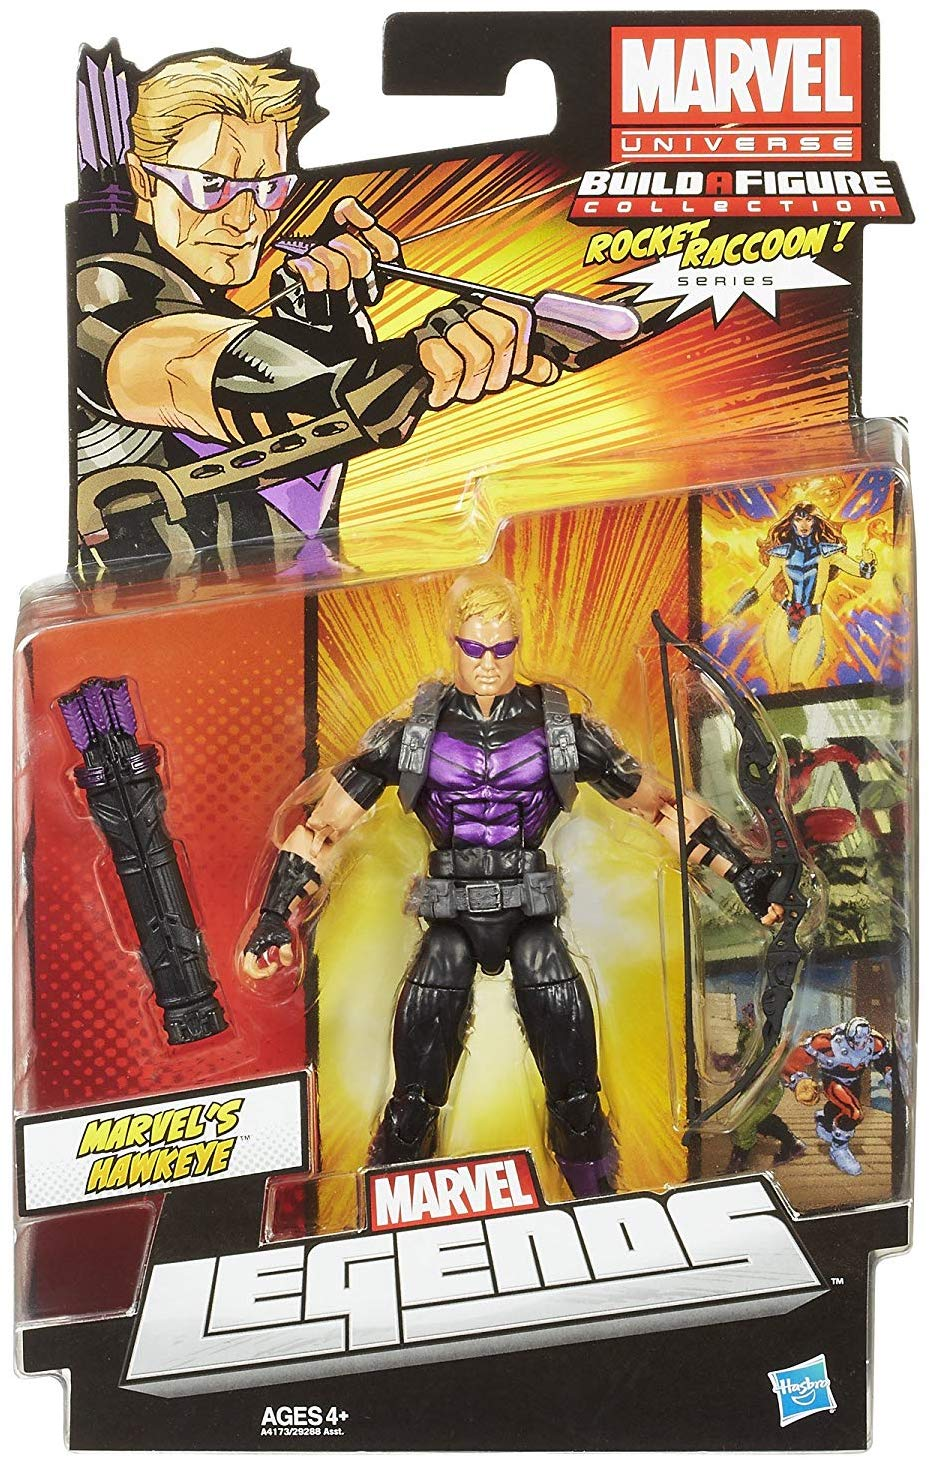 Marvel Legends Rocket Raccoon Series Hawkeye